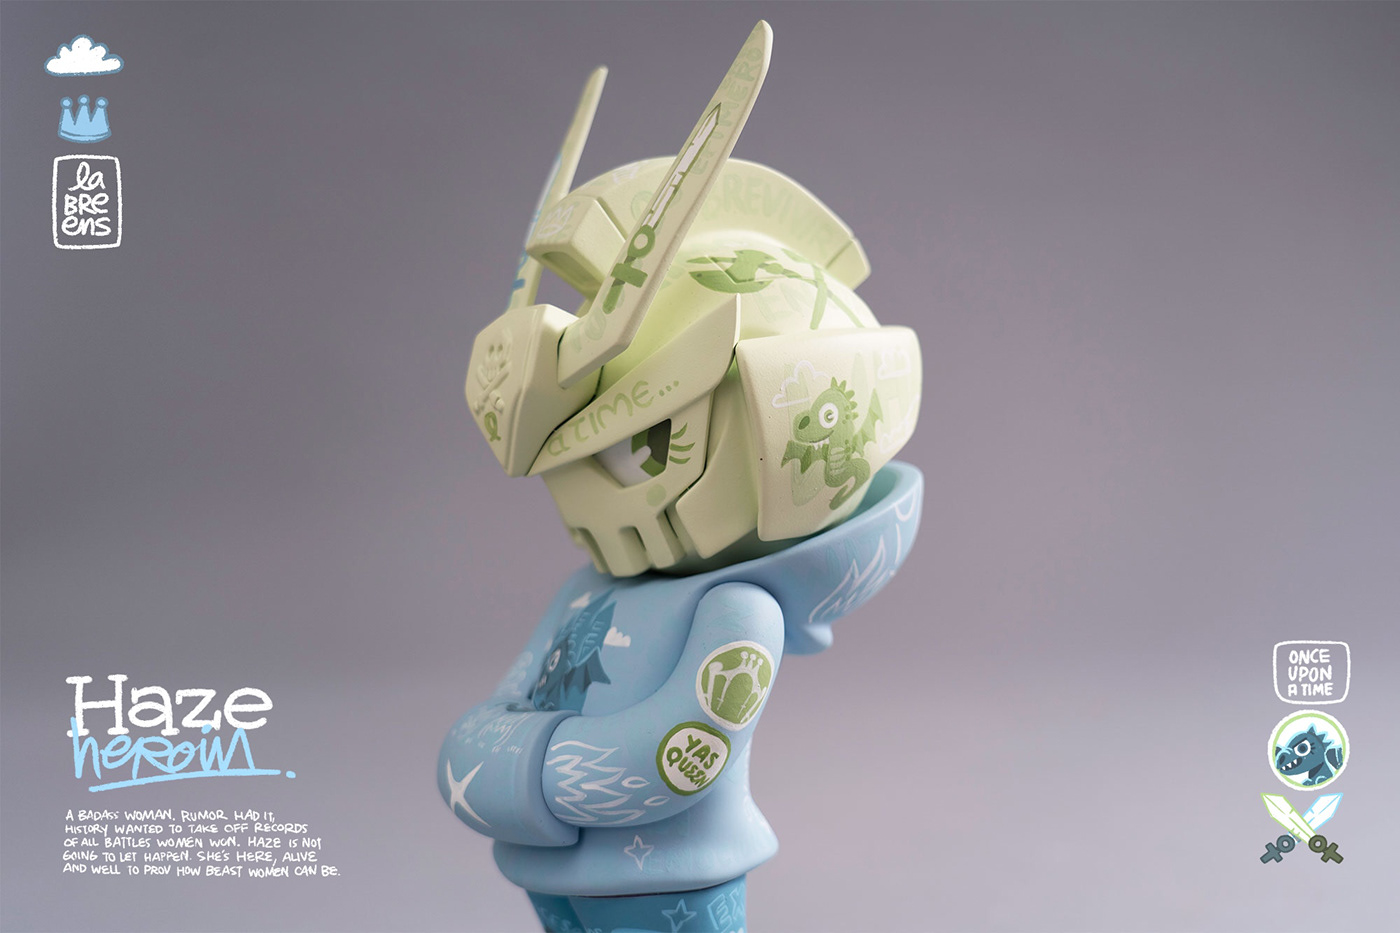 artist arttoy Character Character design  customart painting   productdesign sculpture toy design  toydesigner